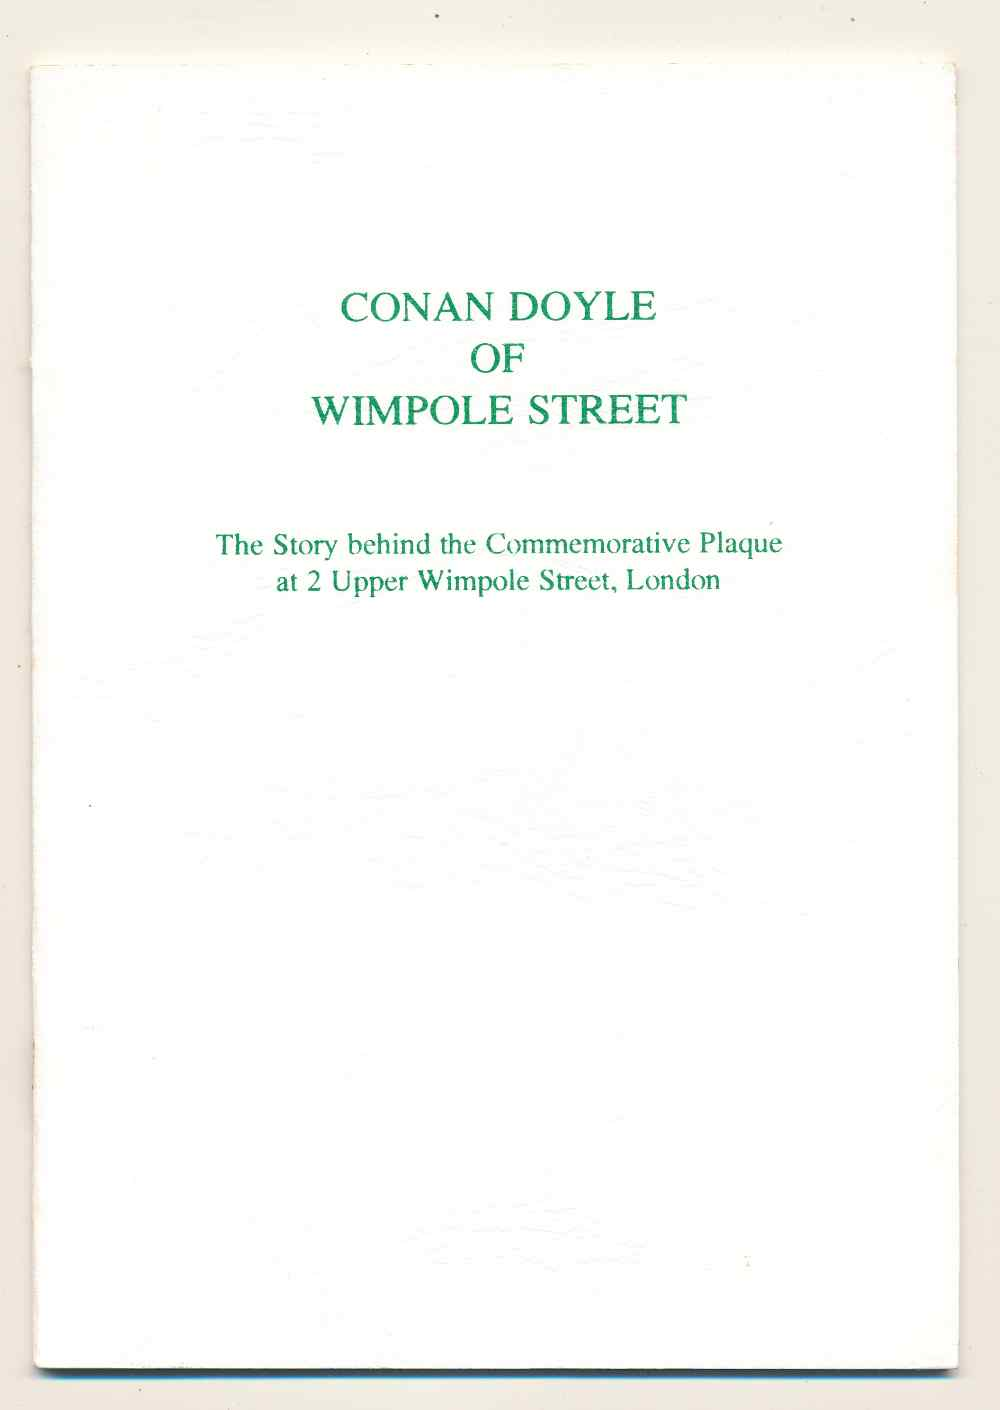 Conan Doyle of Wimpole Street : the story behind the commemorative plaque at 2 Upper Wimpole Street, London